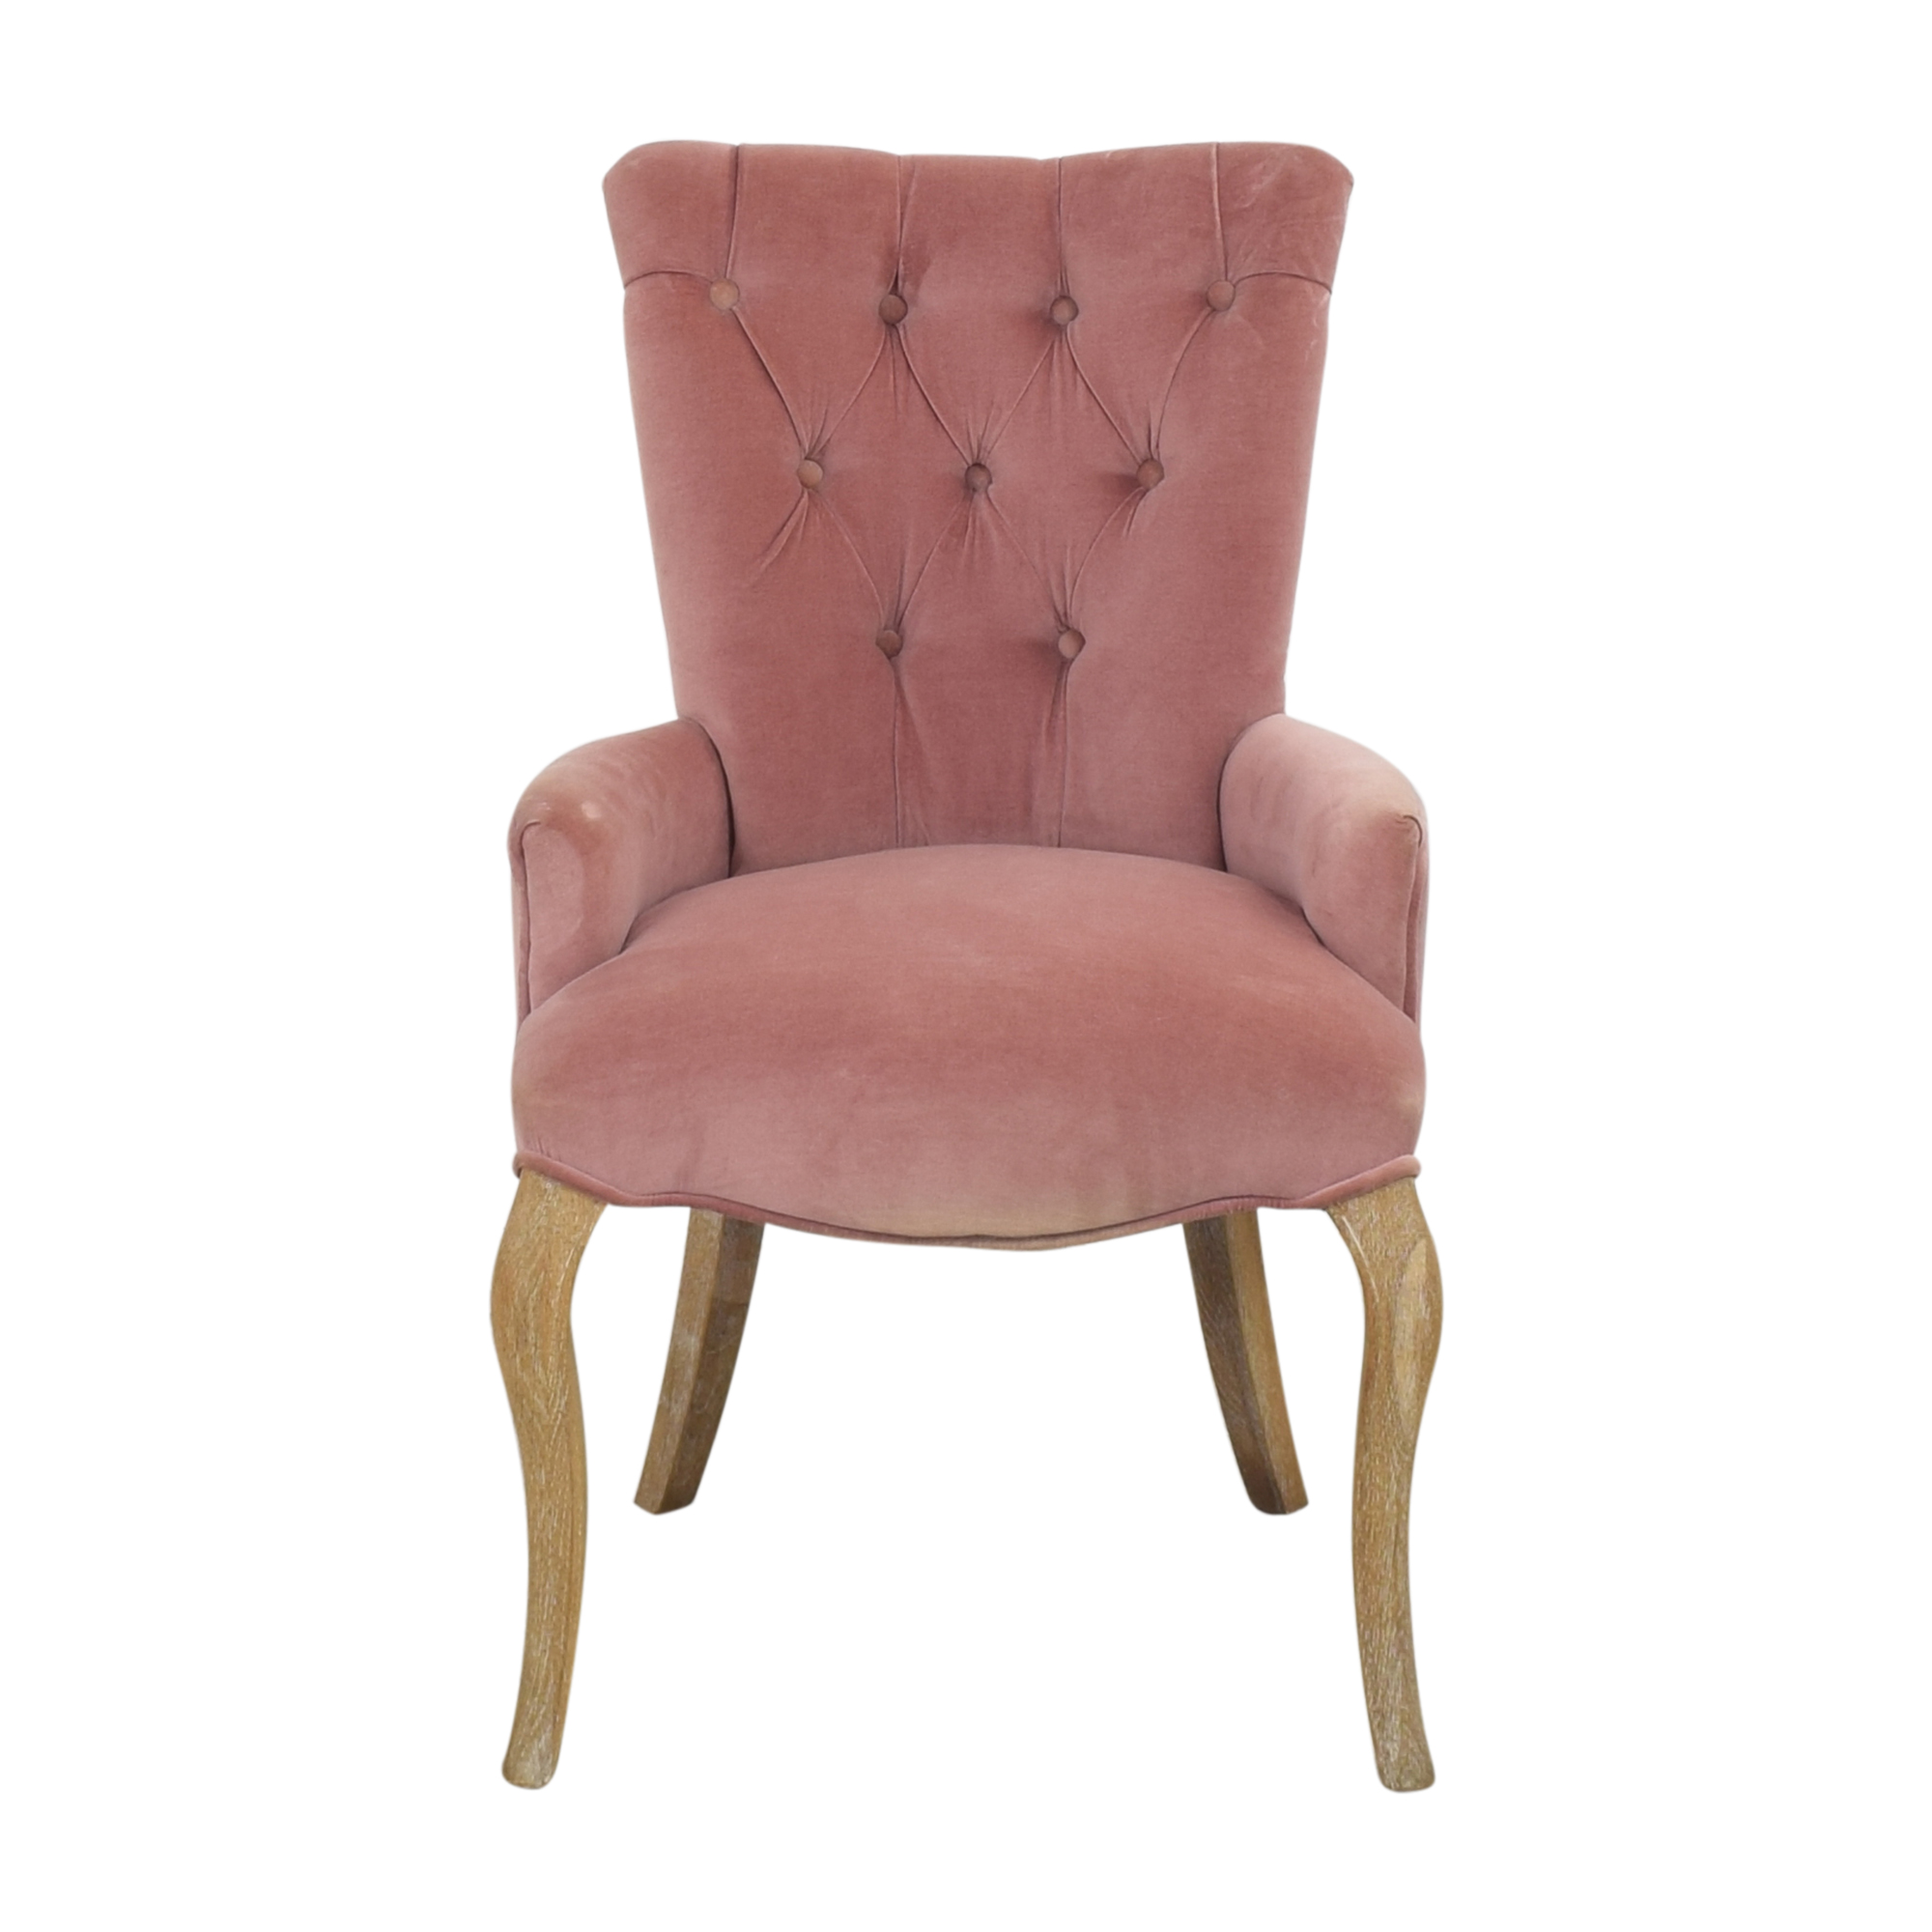 Zentique Zentique Iris Tufted Armchair ct